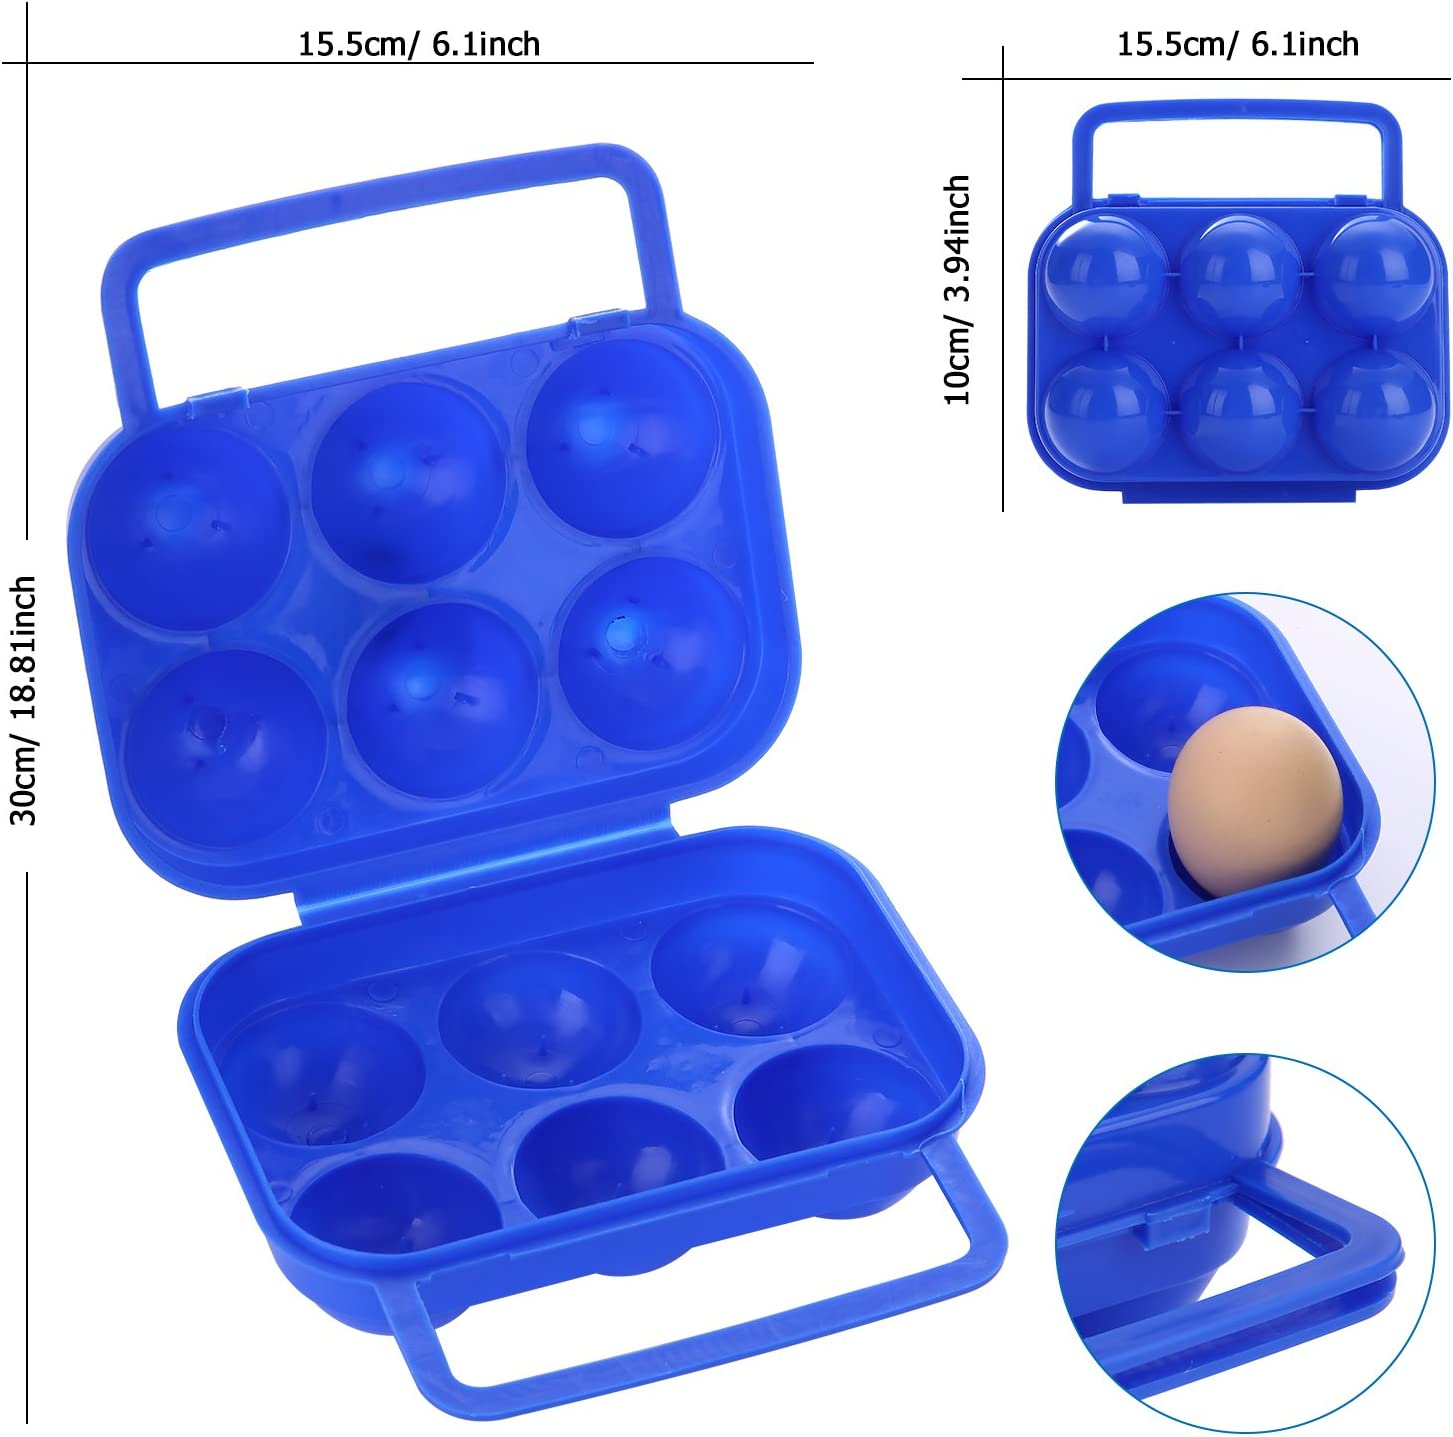 Blue Plastic Portable Eggs Carrier Camping Protector Egg Storage Travel Backpack Container Hard Boiled Egg Storage with Handle for Outdoor Camping Storage FUBARBAR Christmas Matching 6 Egg Holder